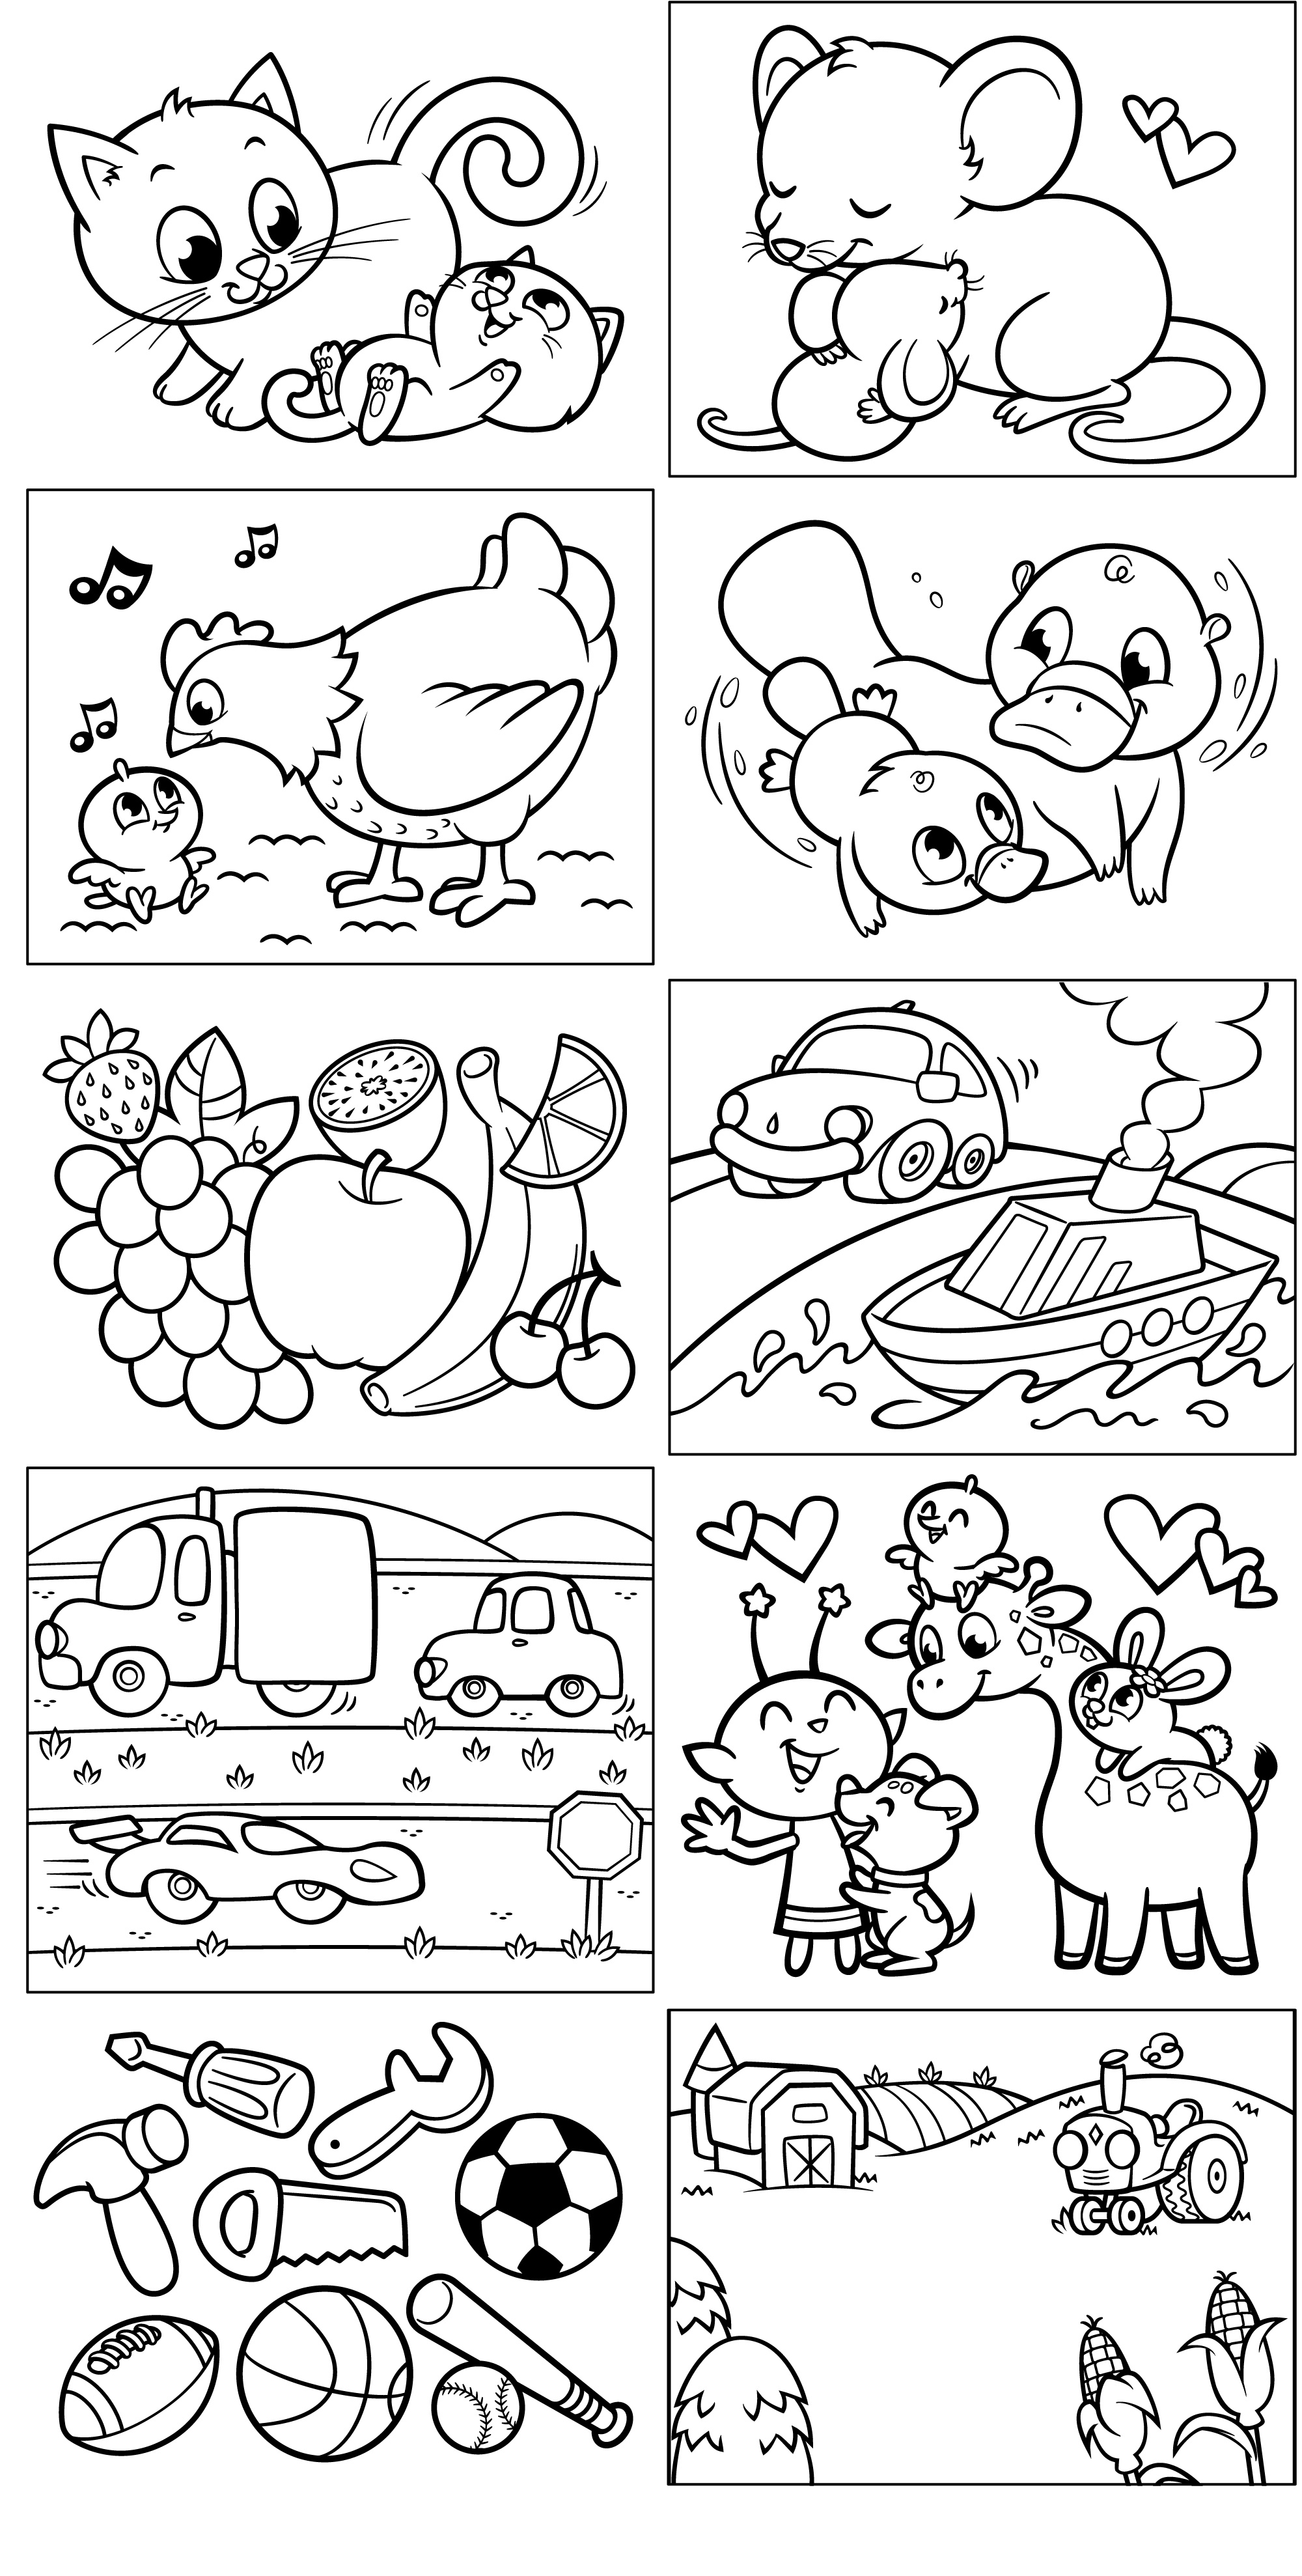 coloring pages with colors - photo#37